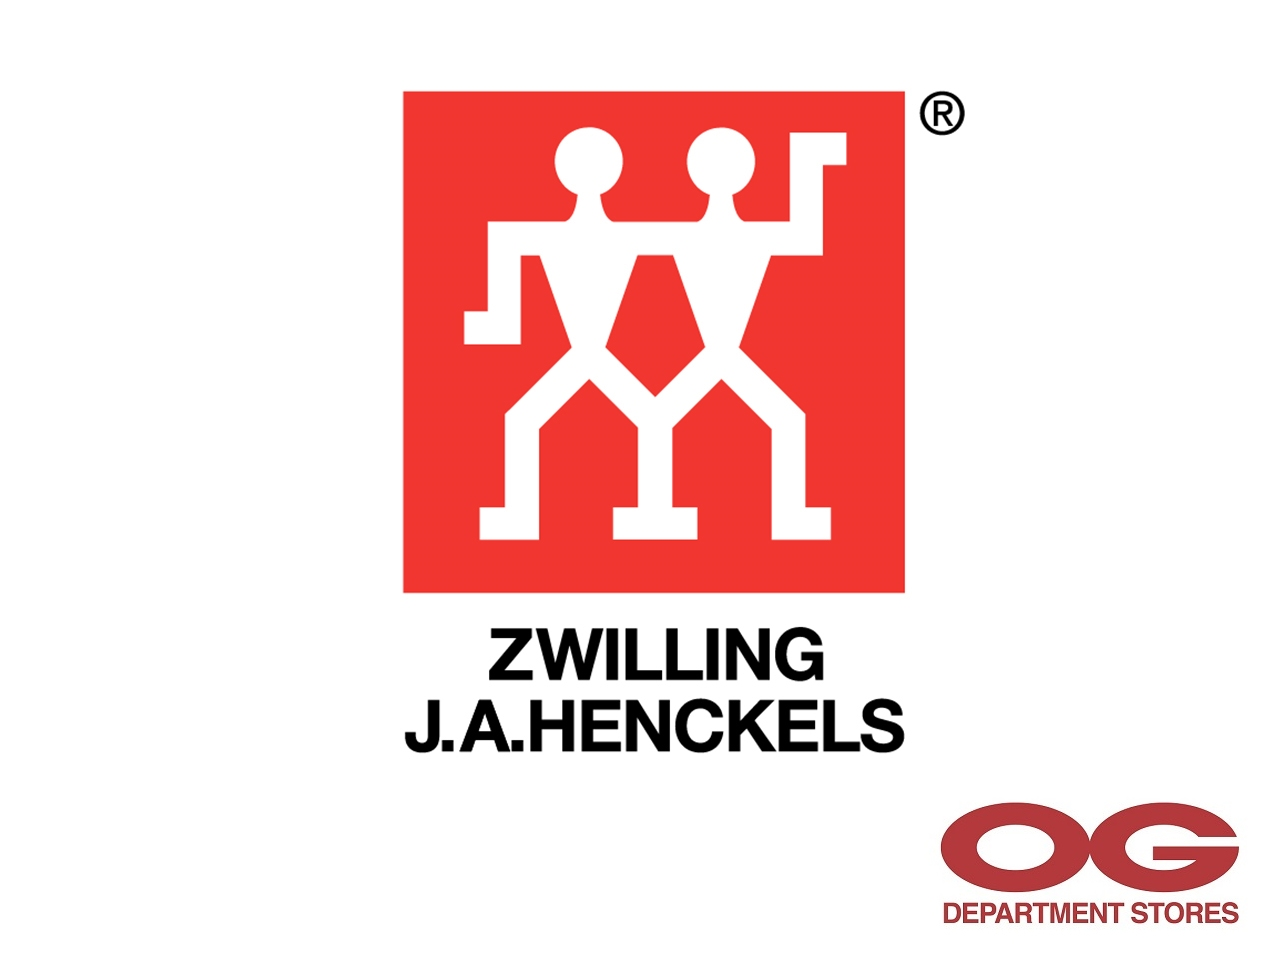 ZWILLING ALL REGULAR-PRICED COOKWARE & ACCESSORIES @ 30% off